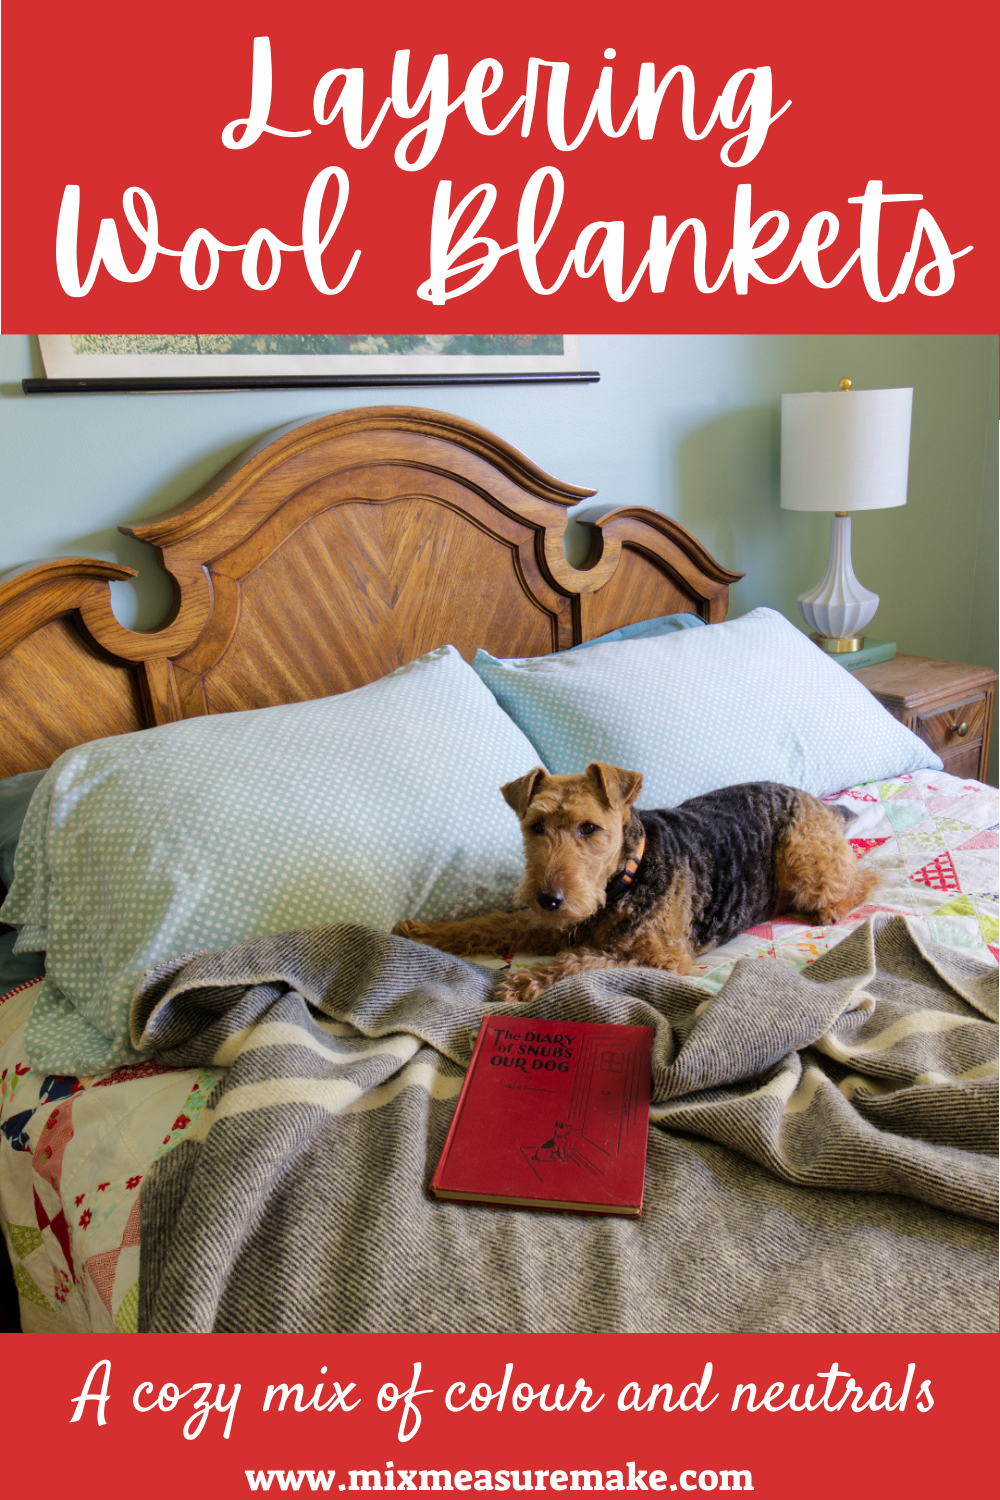 Layering Canadian Wool Blankets Pinterest Graphic - welsh terrier on a wool blanket on the bed